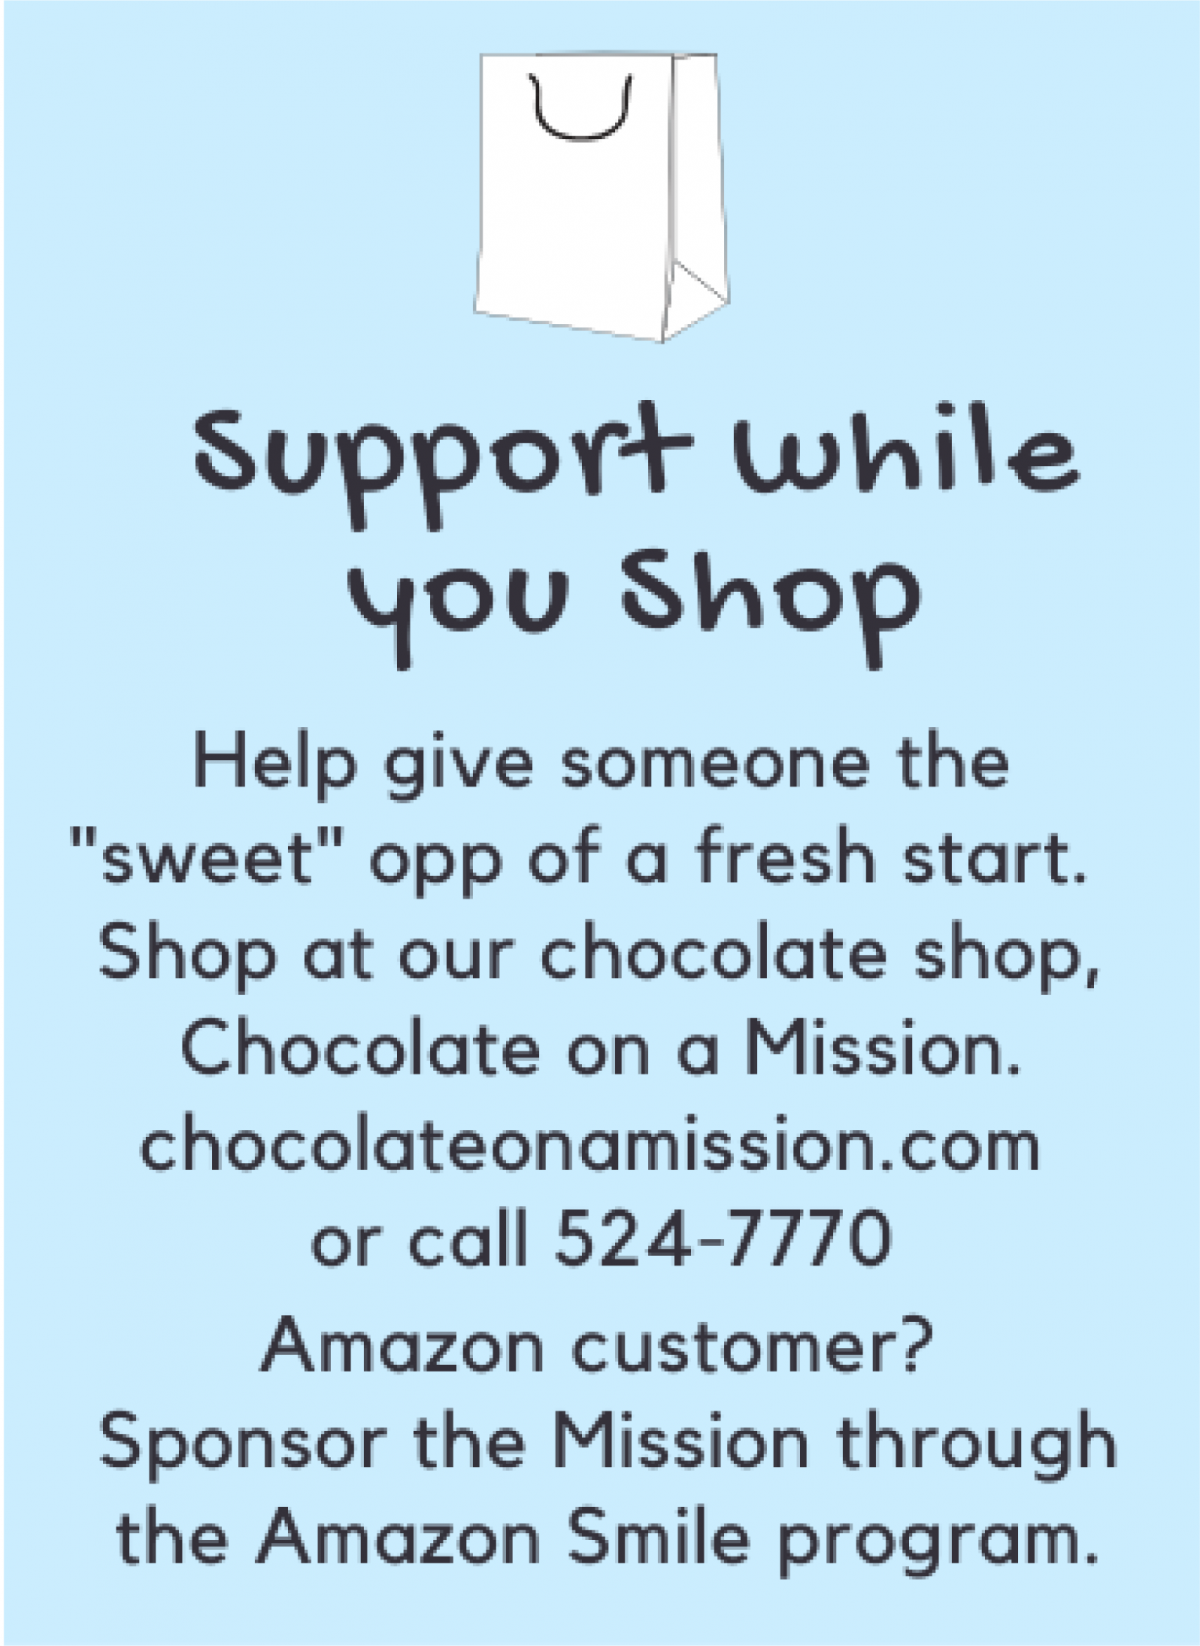 Did you know that shopping can be one way of making an impact in the community? Consider choosing River of Life Mission when shopping through Amazon Smile or check our Chocolate on a Mission!